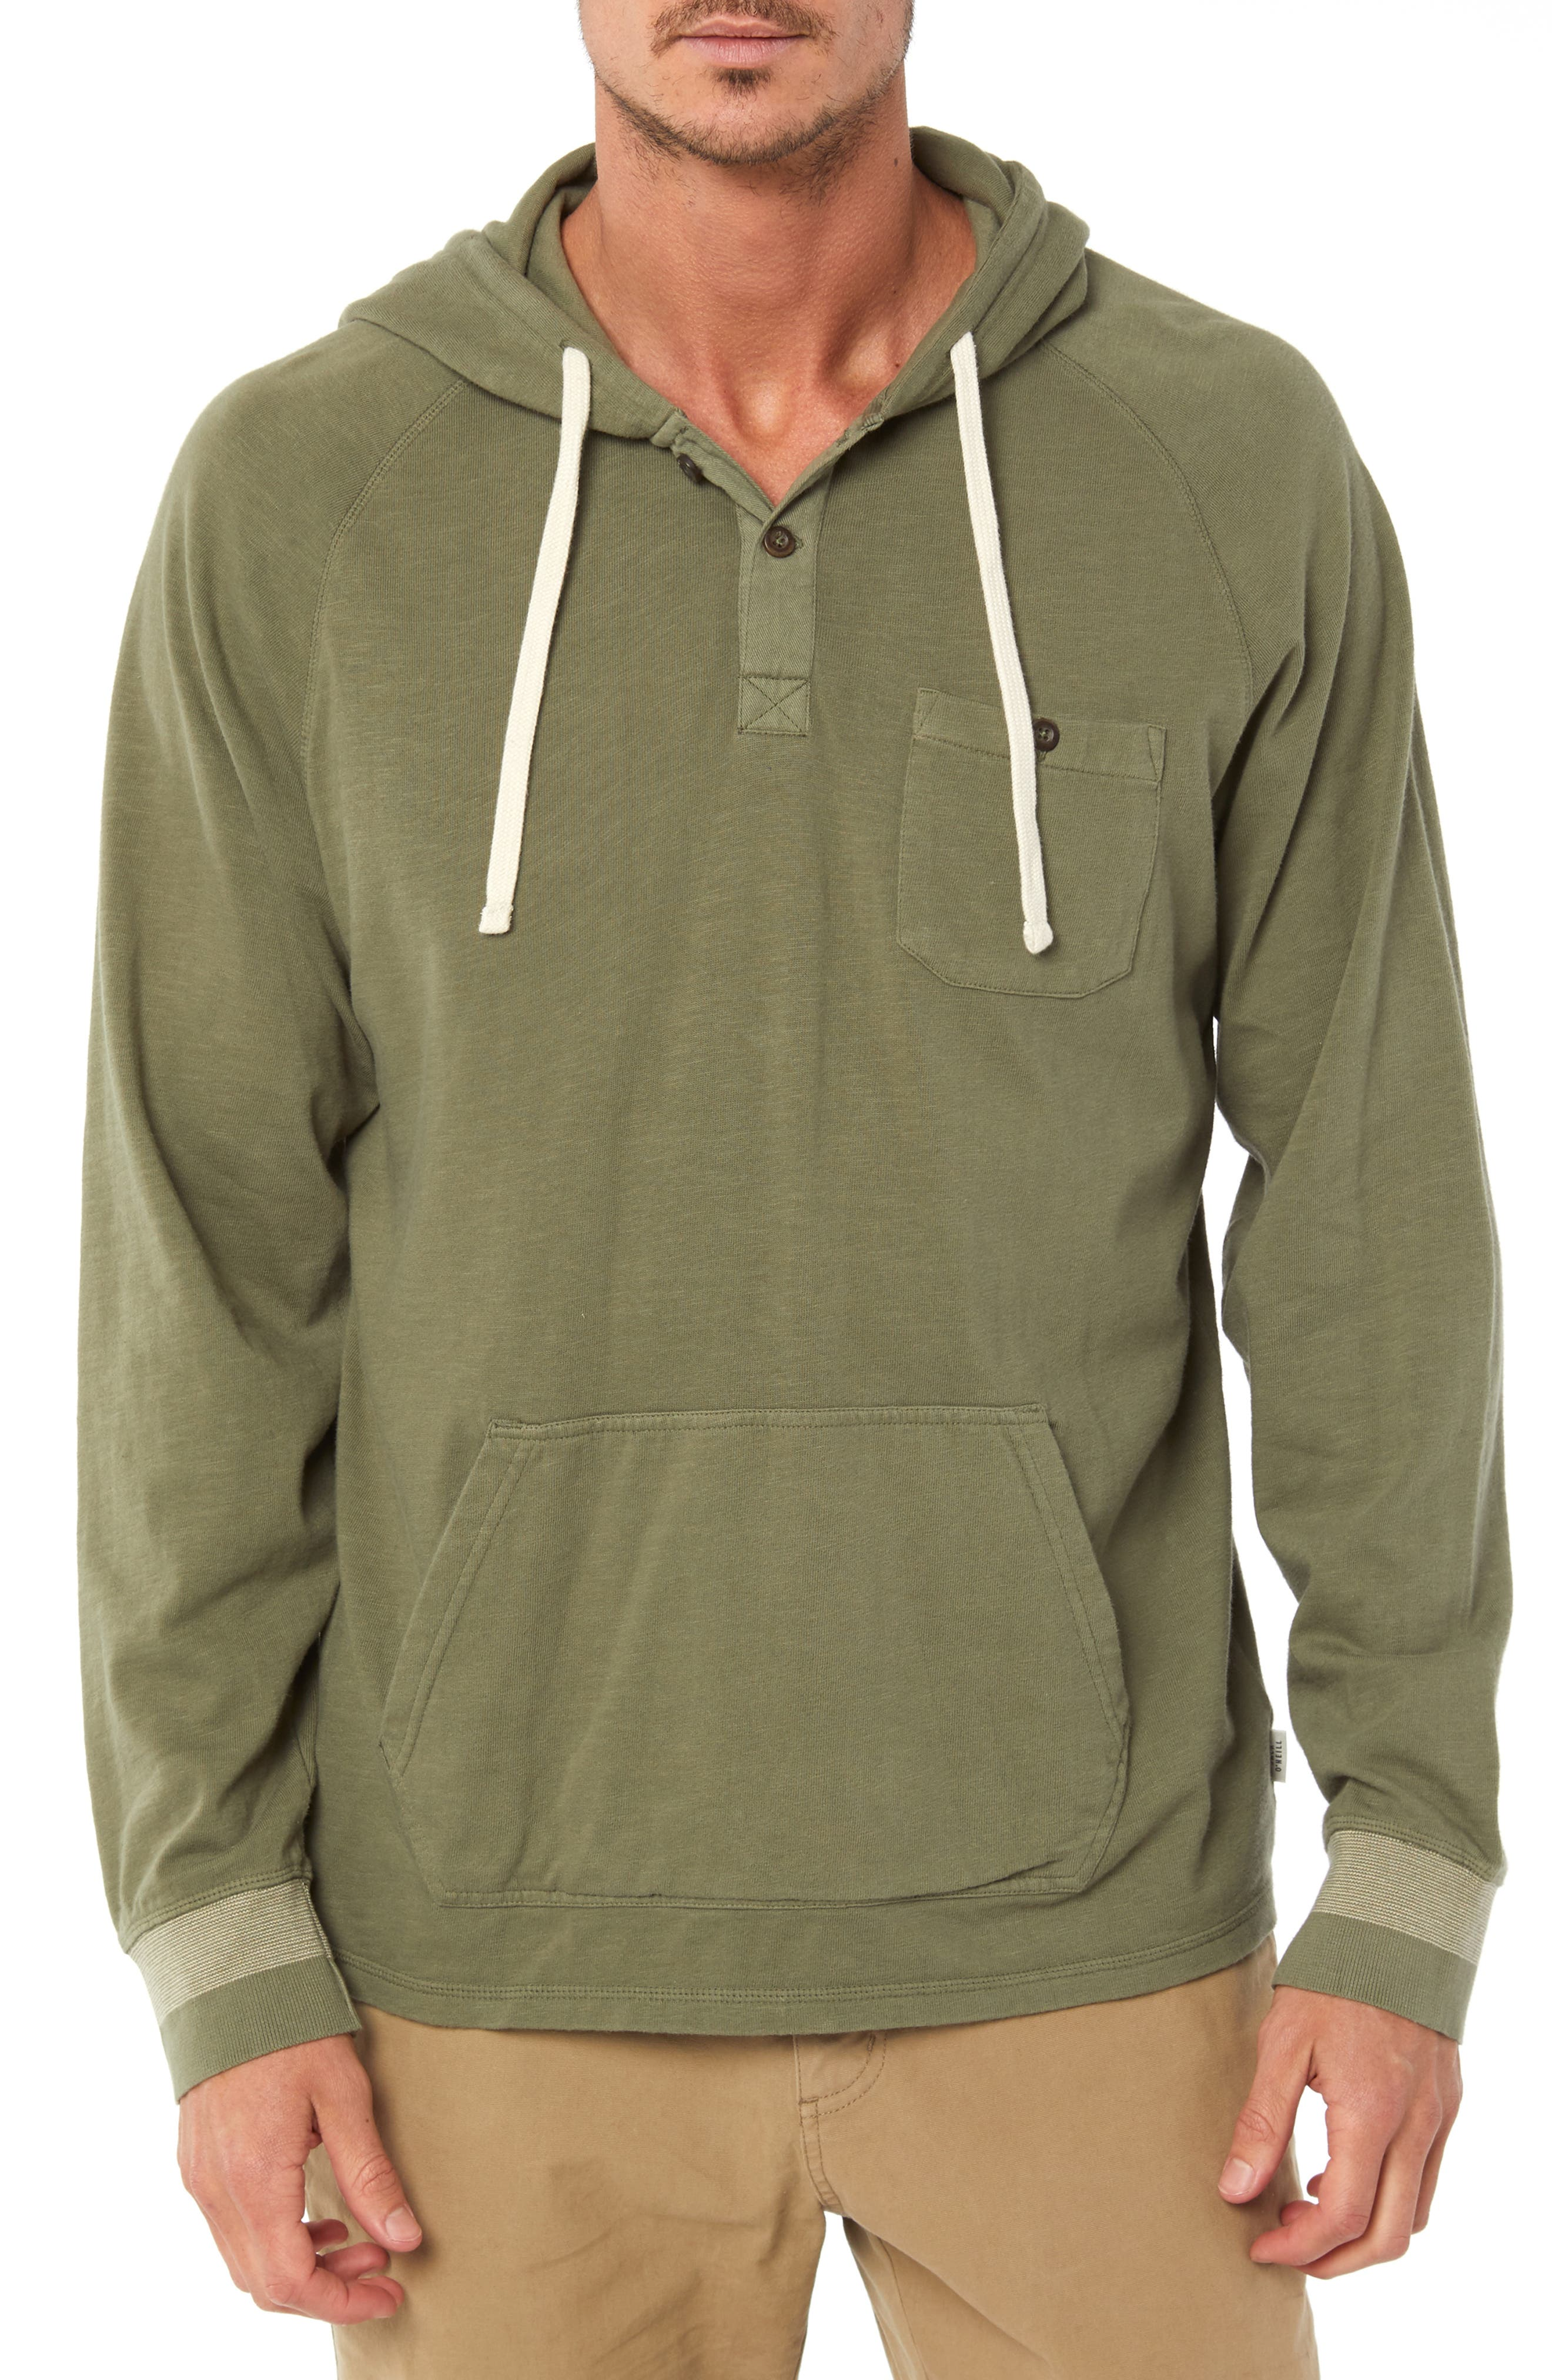 Undersail Hoodie,                             Main thumbnail 1, color,                             DUSTY OLIVE